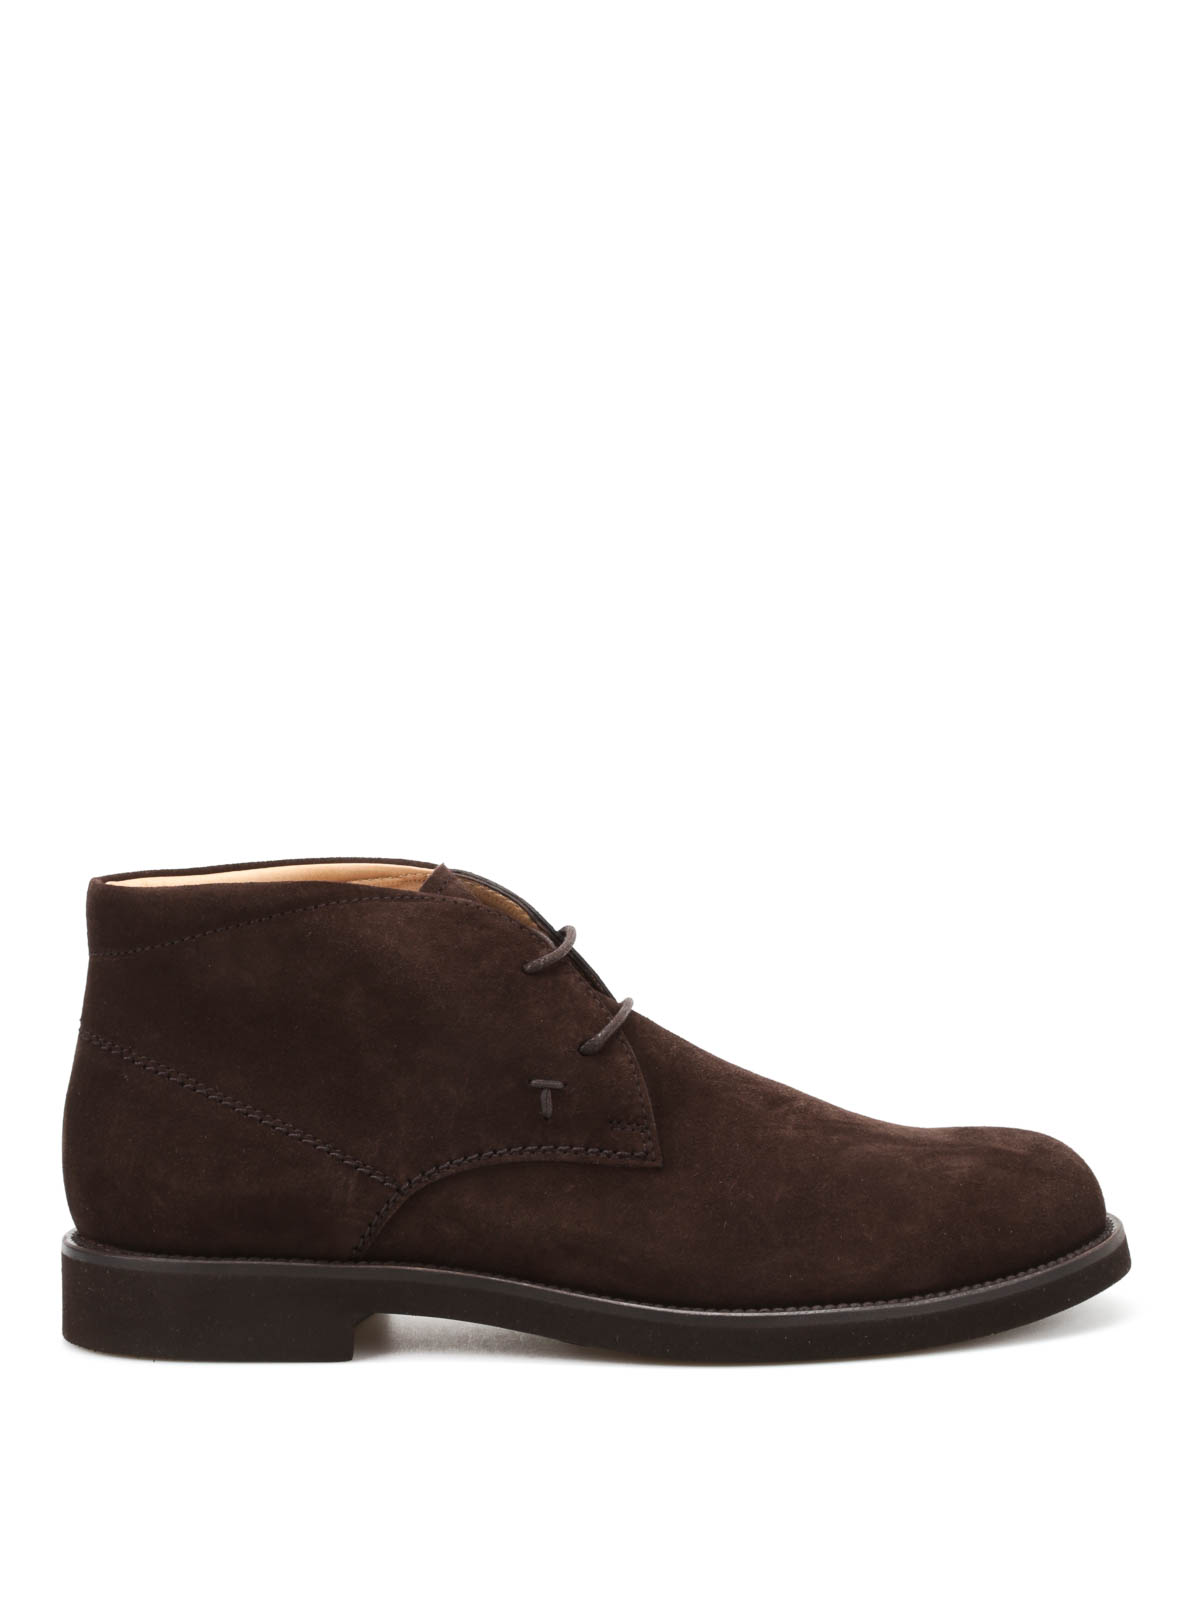 suede desert boots by tod s ankle boots ikrix